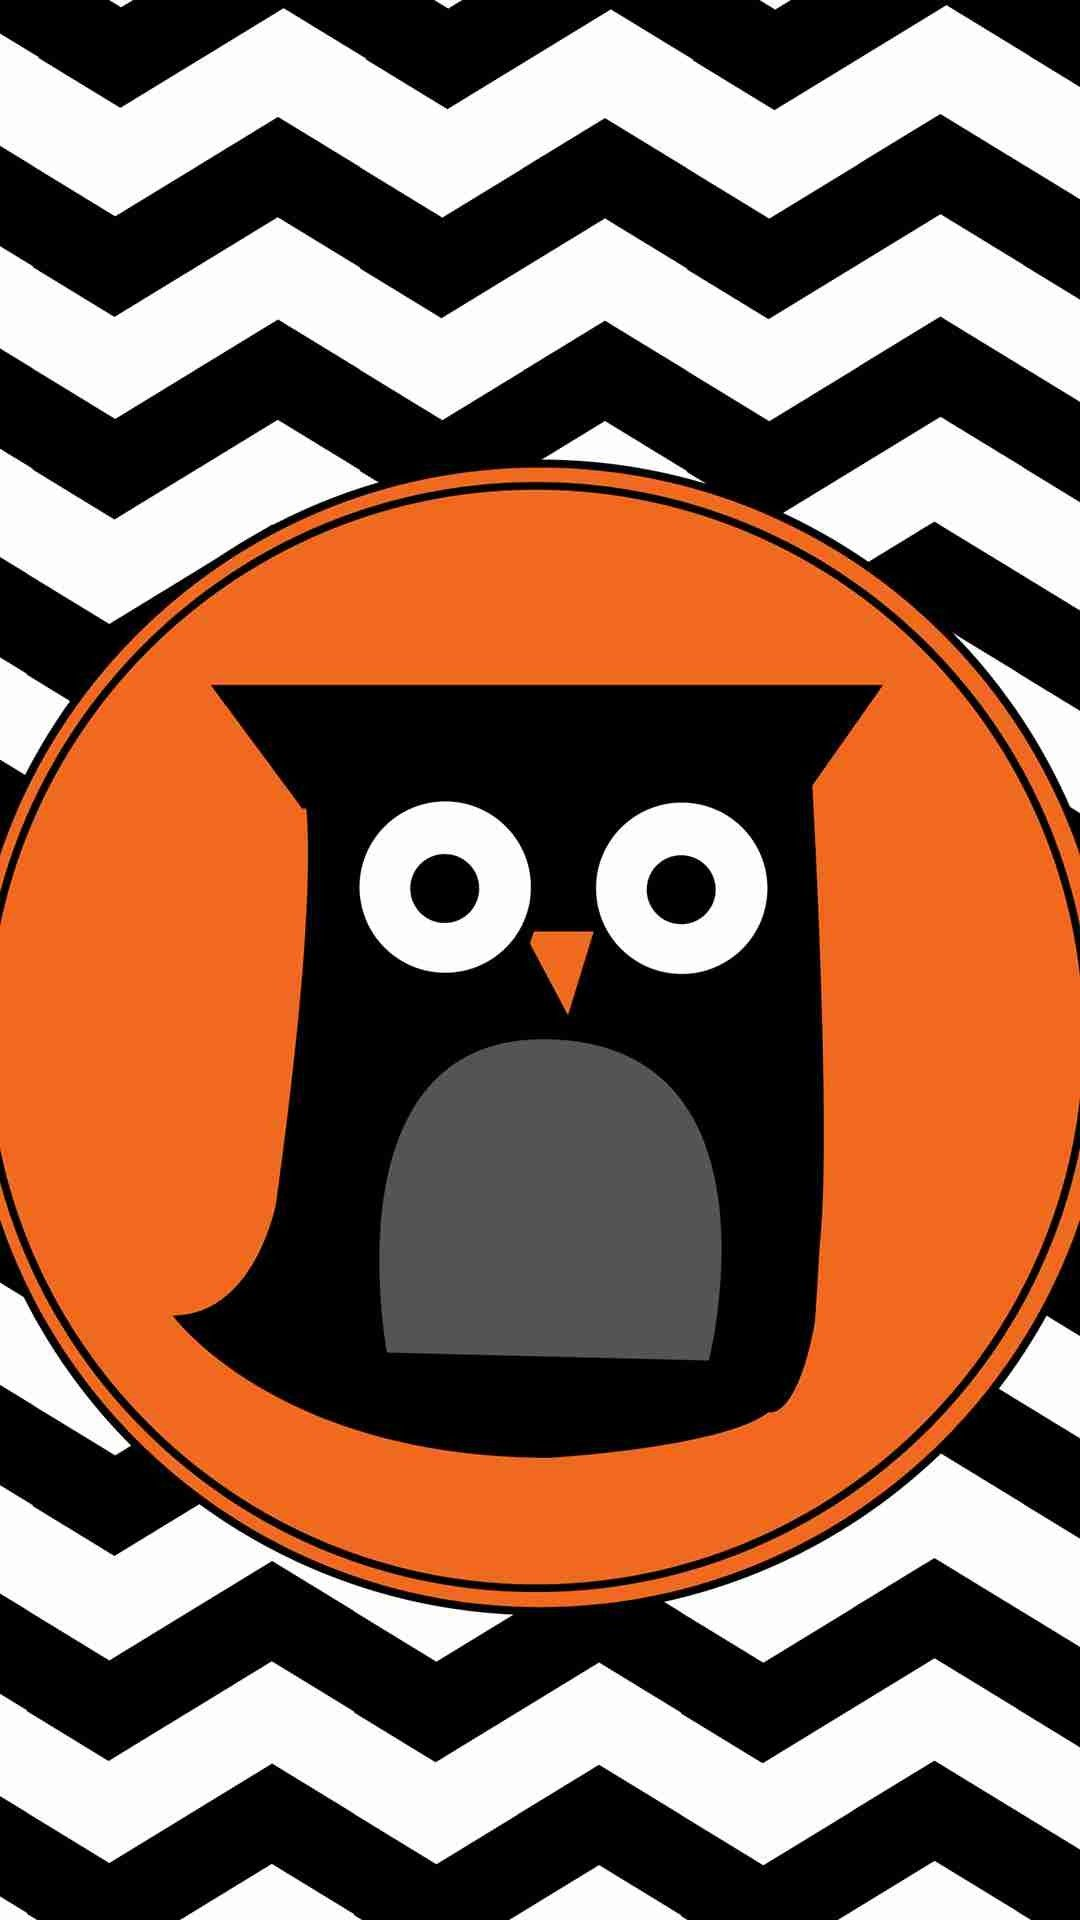 Cartoon Owl and Chevron Pattern iPhone 6 Plus Wallpaper